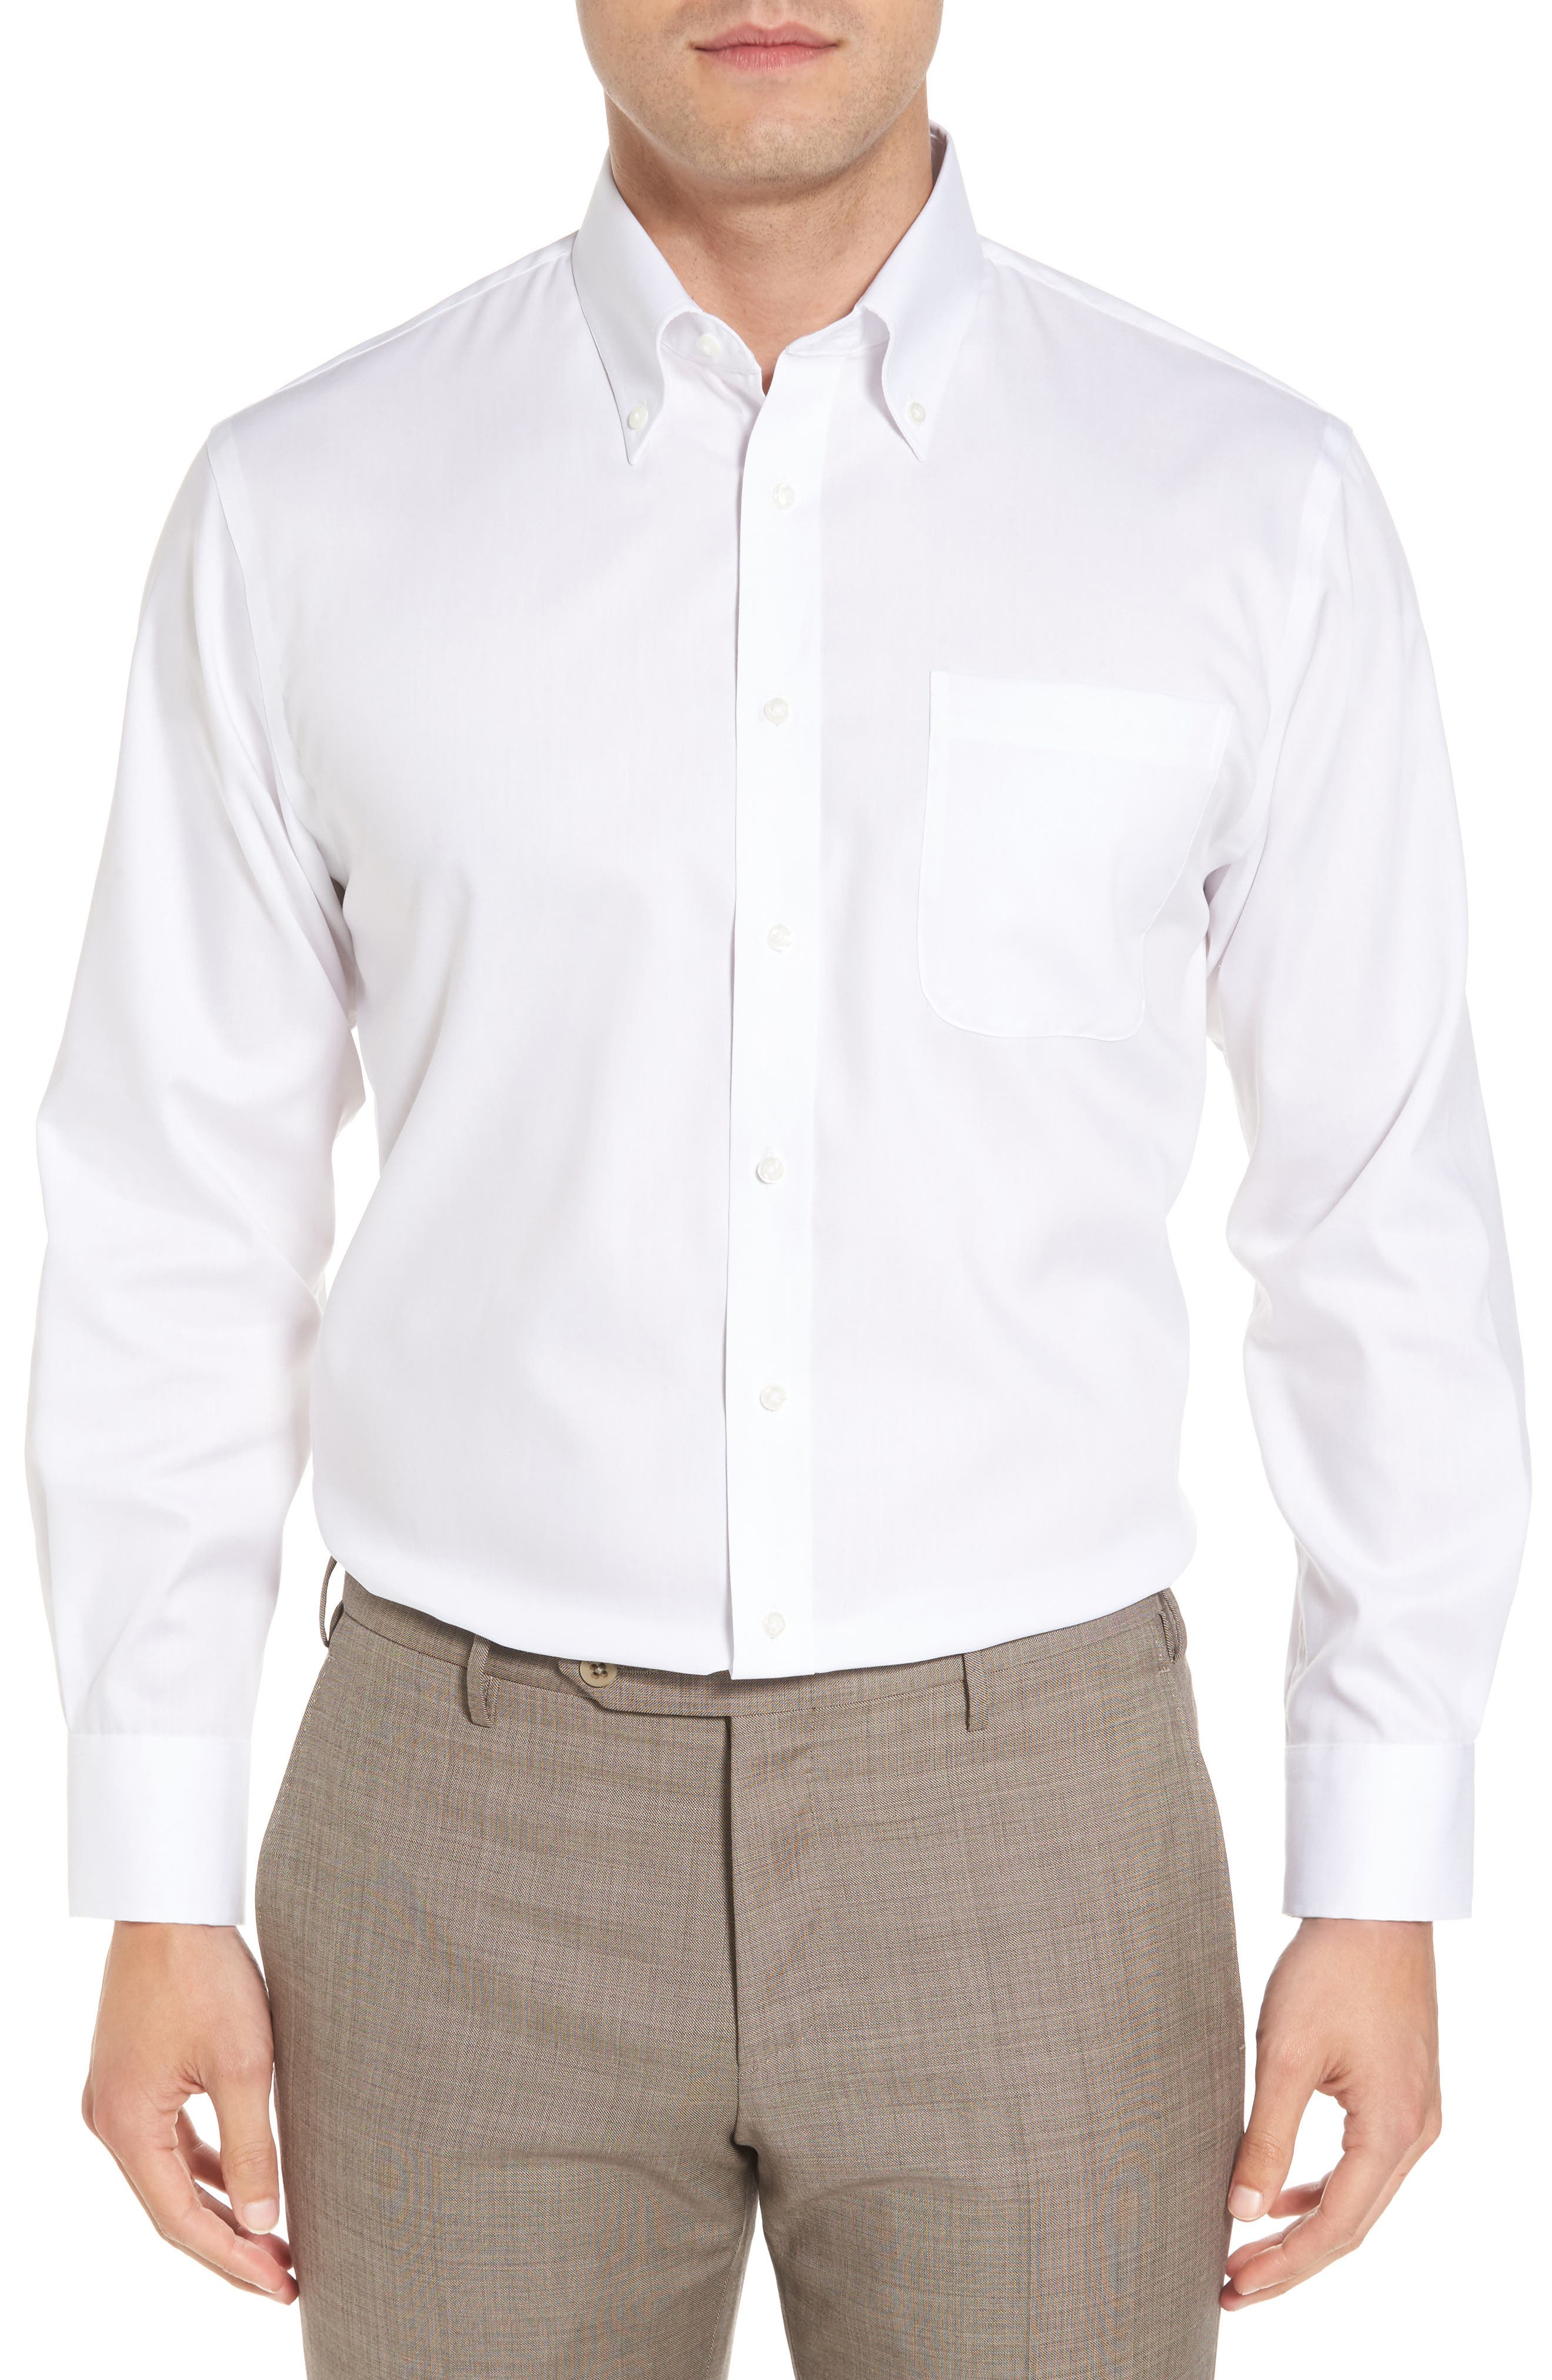 Nordstrom Men's Shop Traditional Fit Non-Iron Solid Dress Shirt